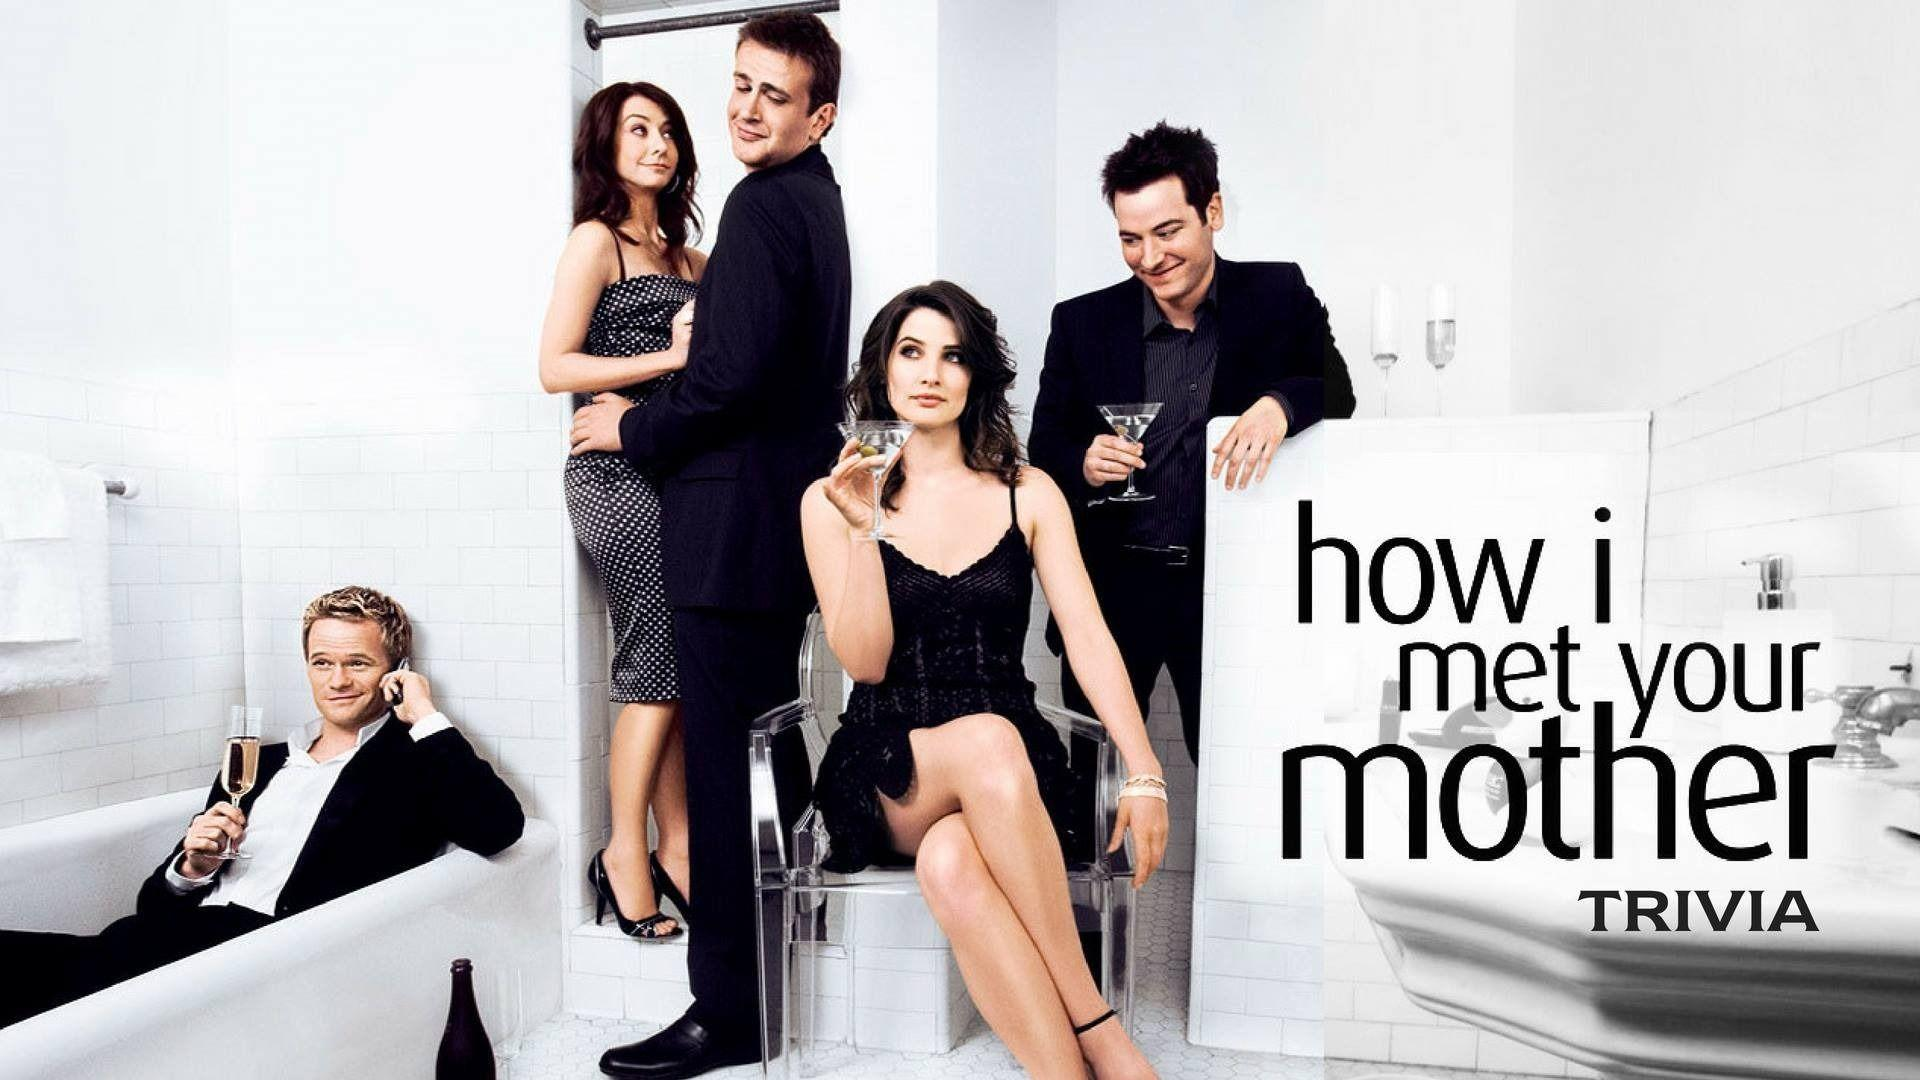 107145 image highres 490588415 - ONLINE How I Met Your Mother Trivia! (LIVE- from ur computer)-Fundraiser